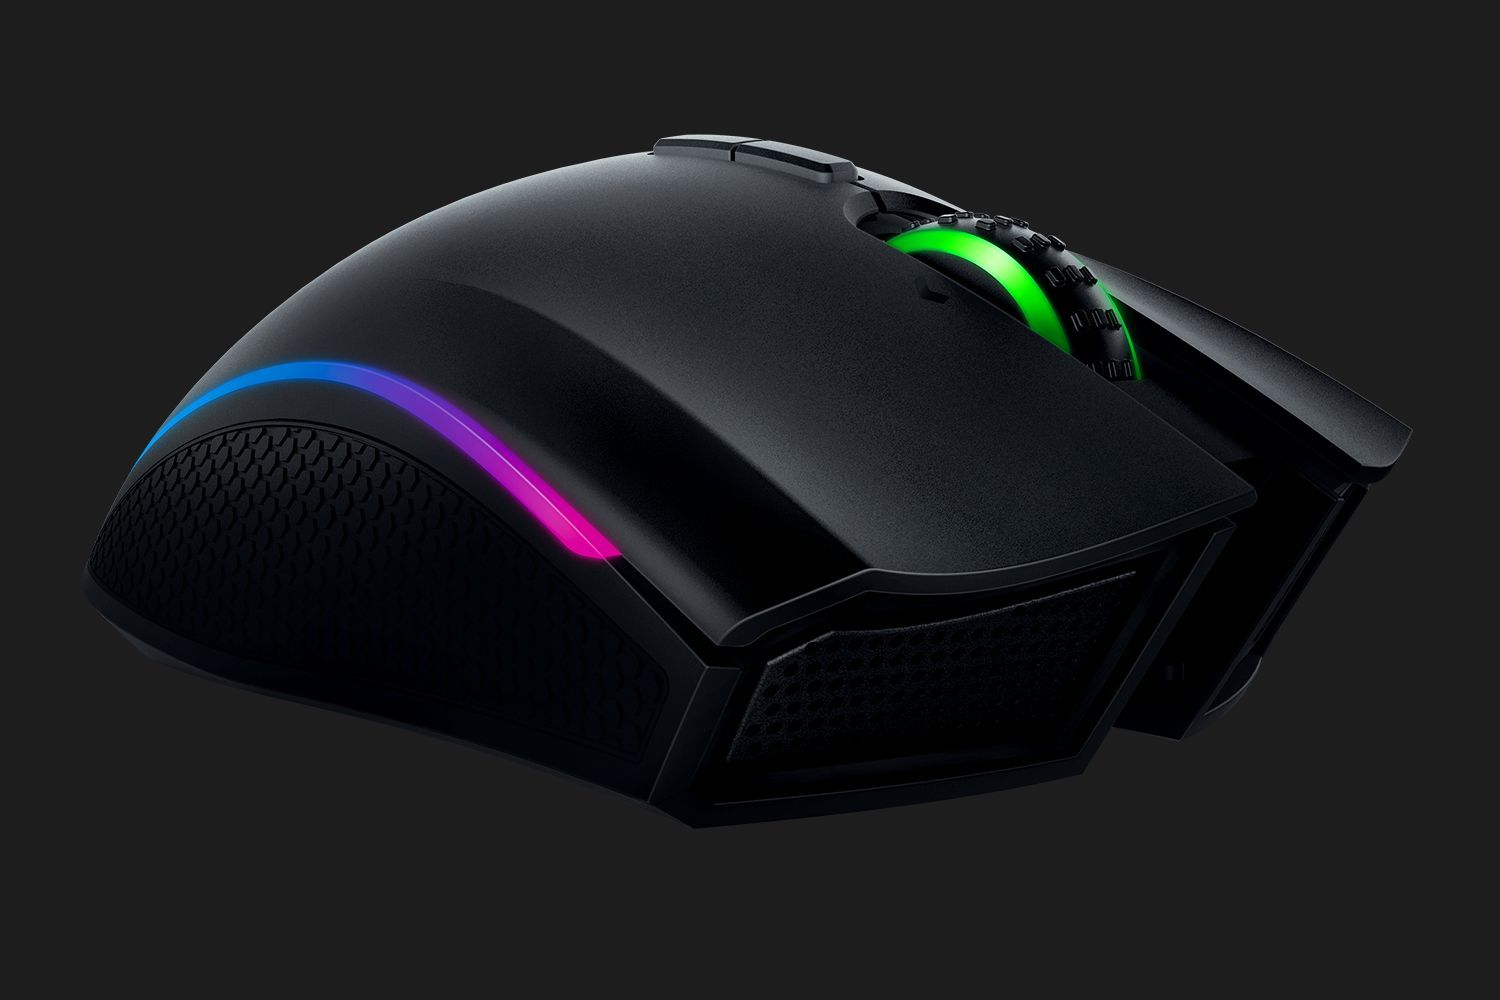 839d8ea754a Unlike competitors which use their mats to charge a battery, Razer has  removed the battery altogether, resulting in an extremely lightweight mouse,  ...